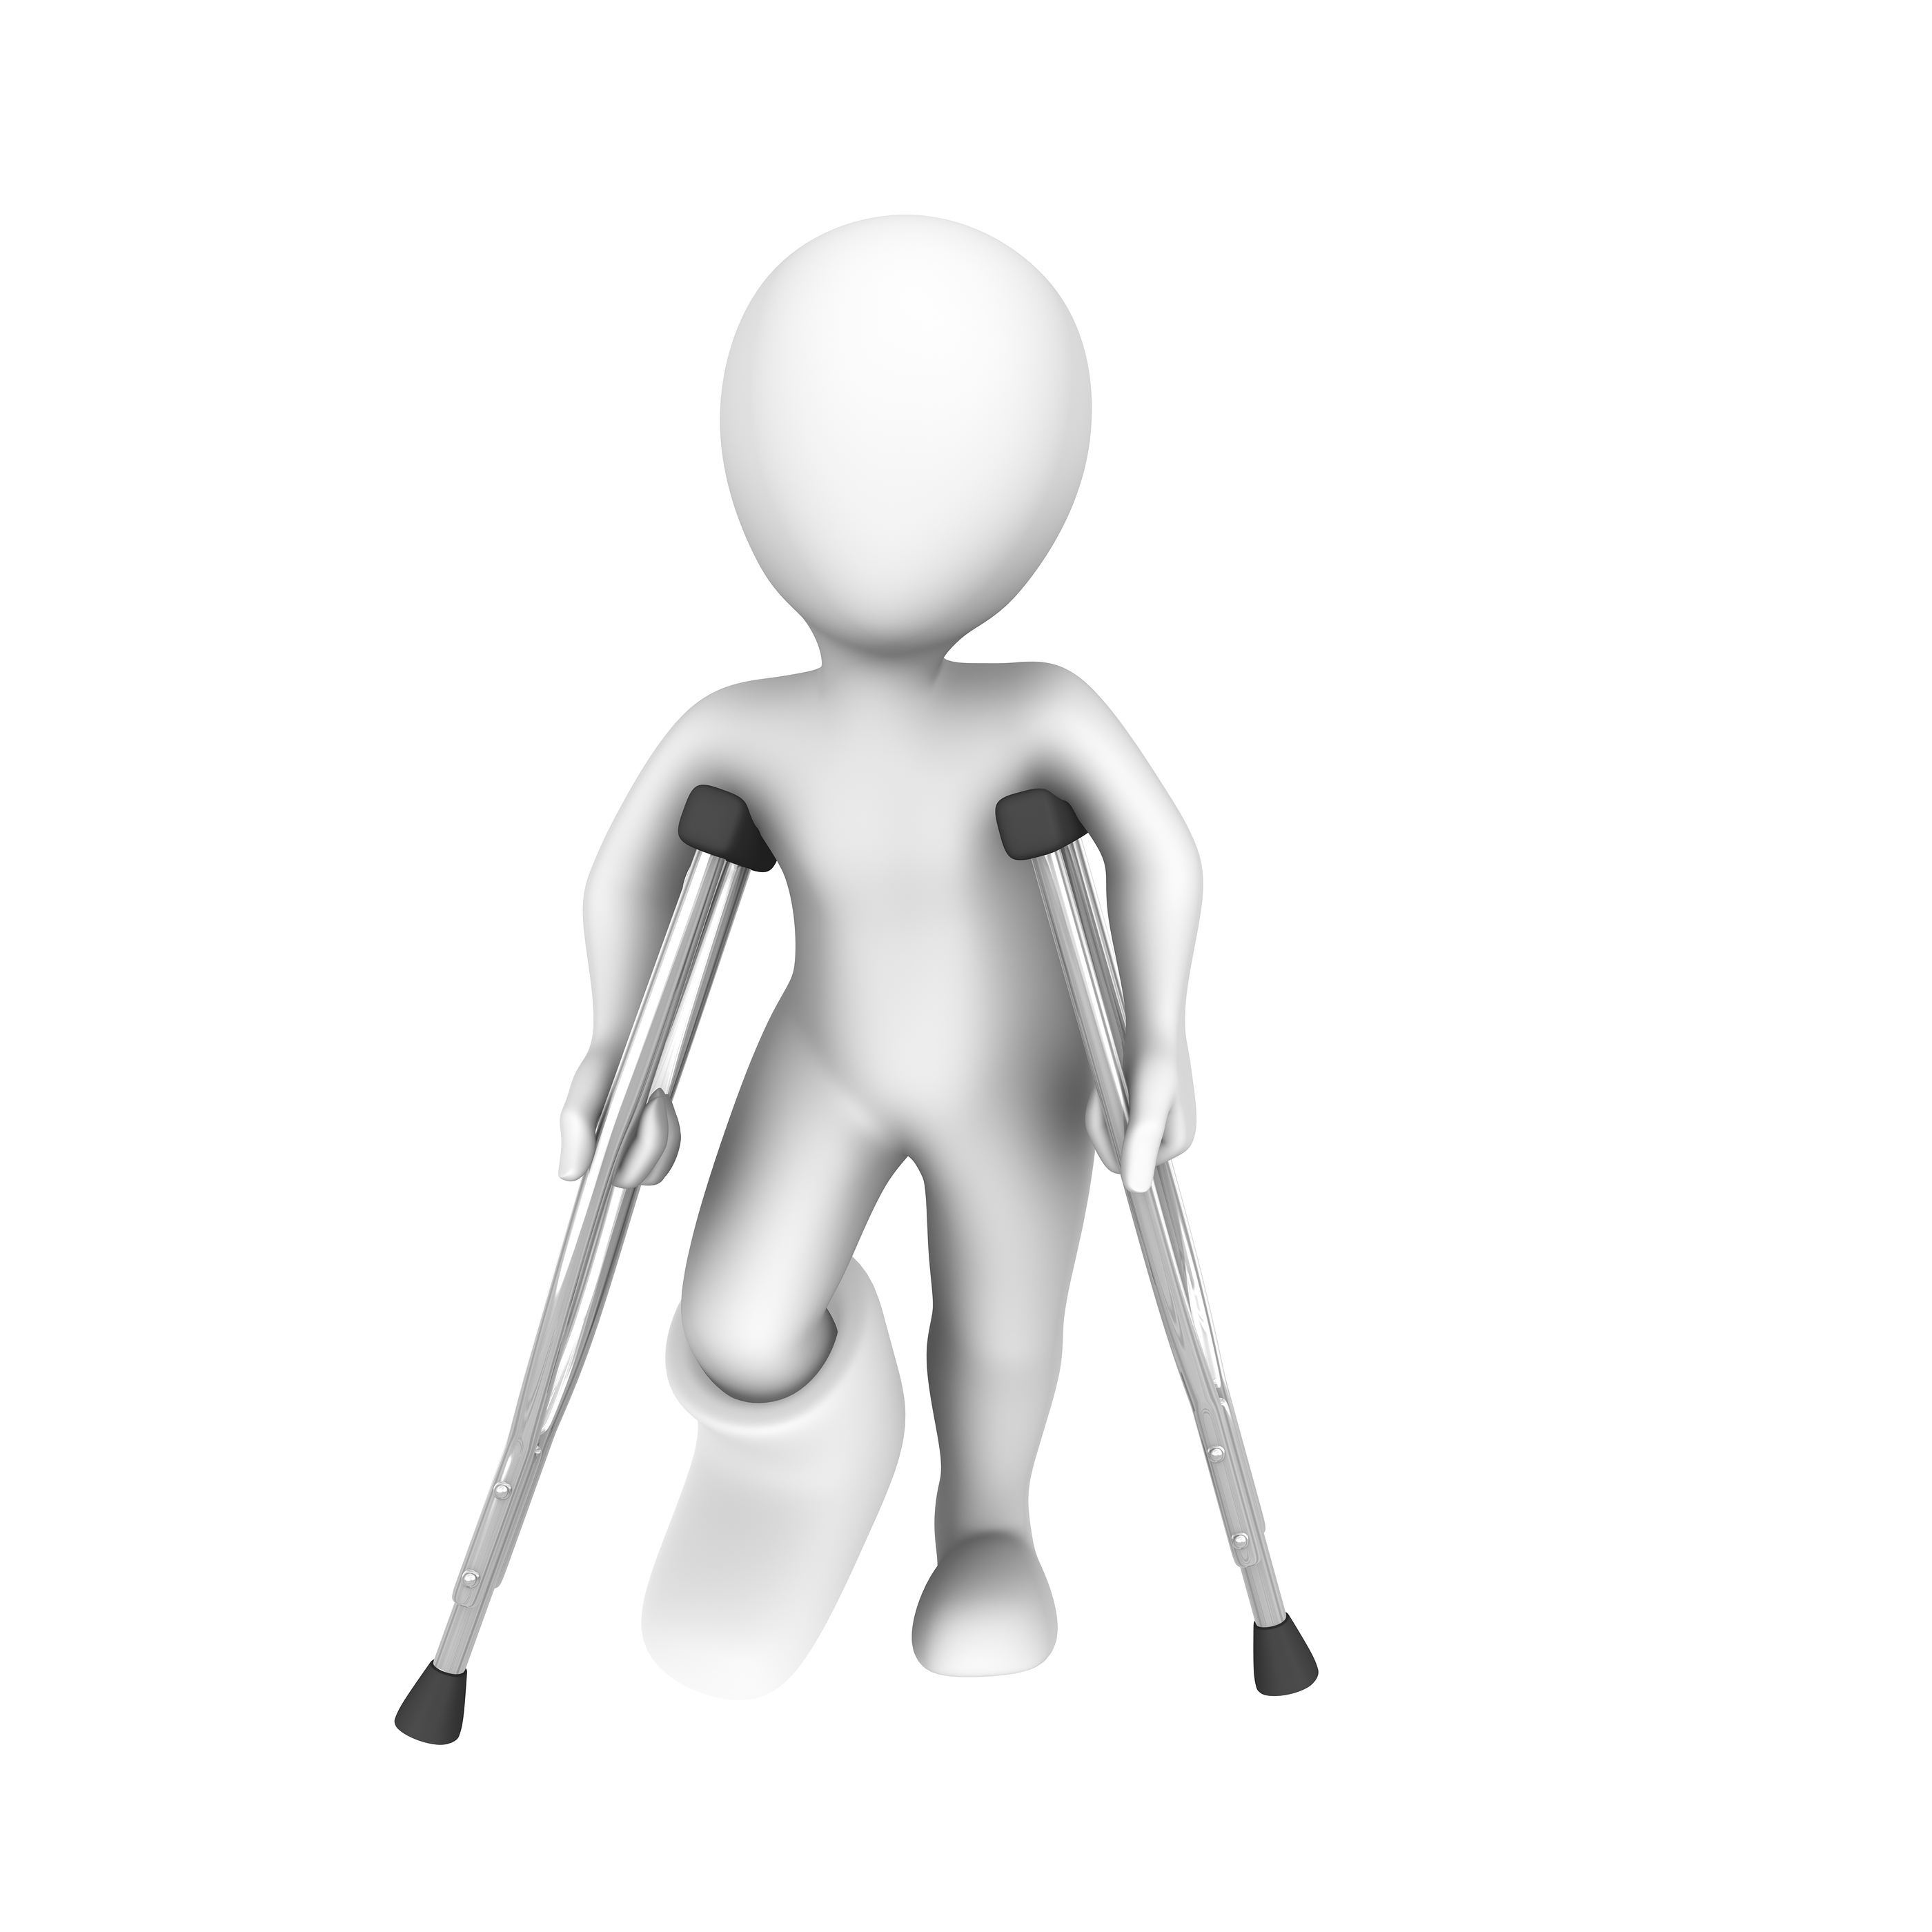 Stages of Weight Bearing With Crutches after Injury - The